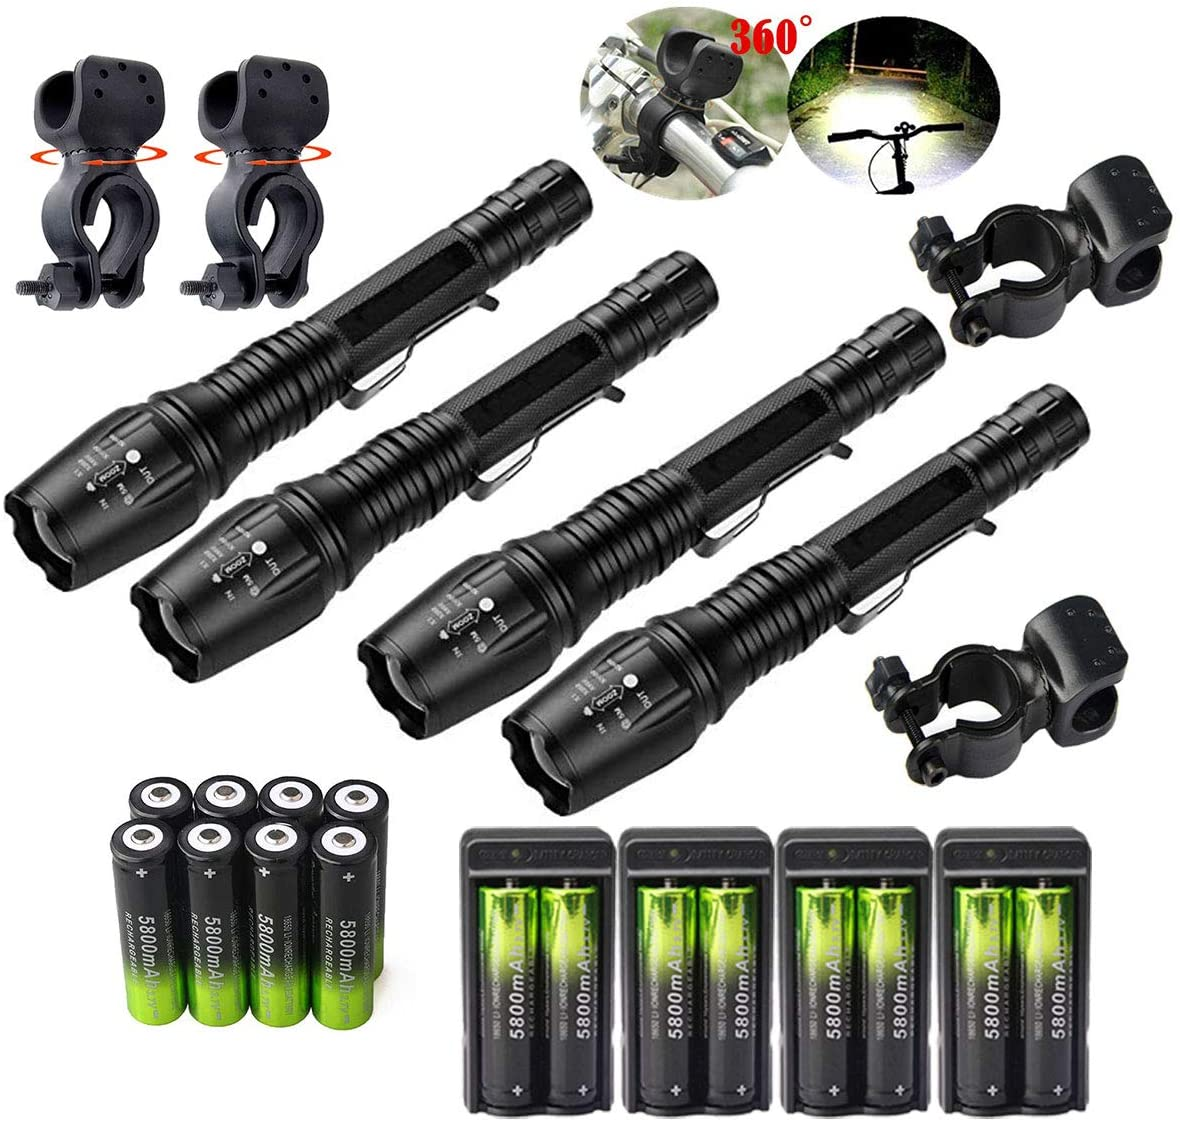 4 Set Tactical 90000LM Zoomable 5 Modes Portable LED 18650 Flashlight 5800mAh Rechargeable Batteries Dual Smart Battery Chargers Bike clip for Camping Hiking Running Outdoor